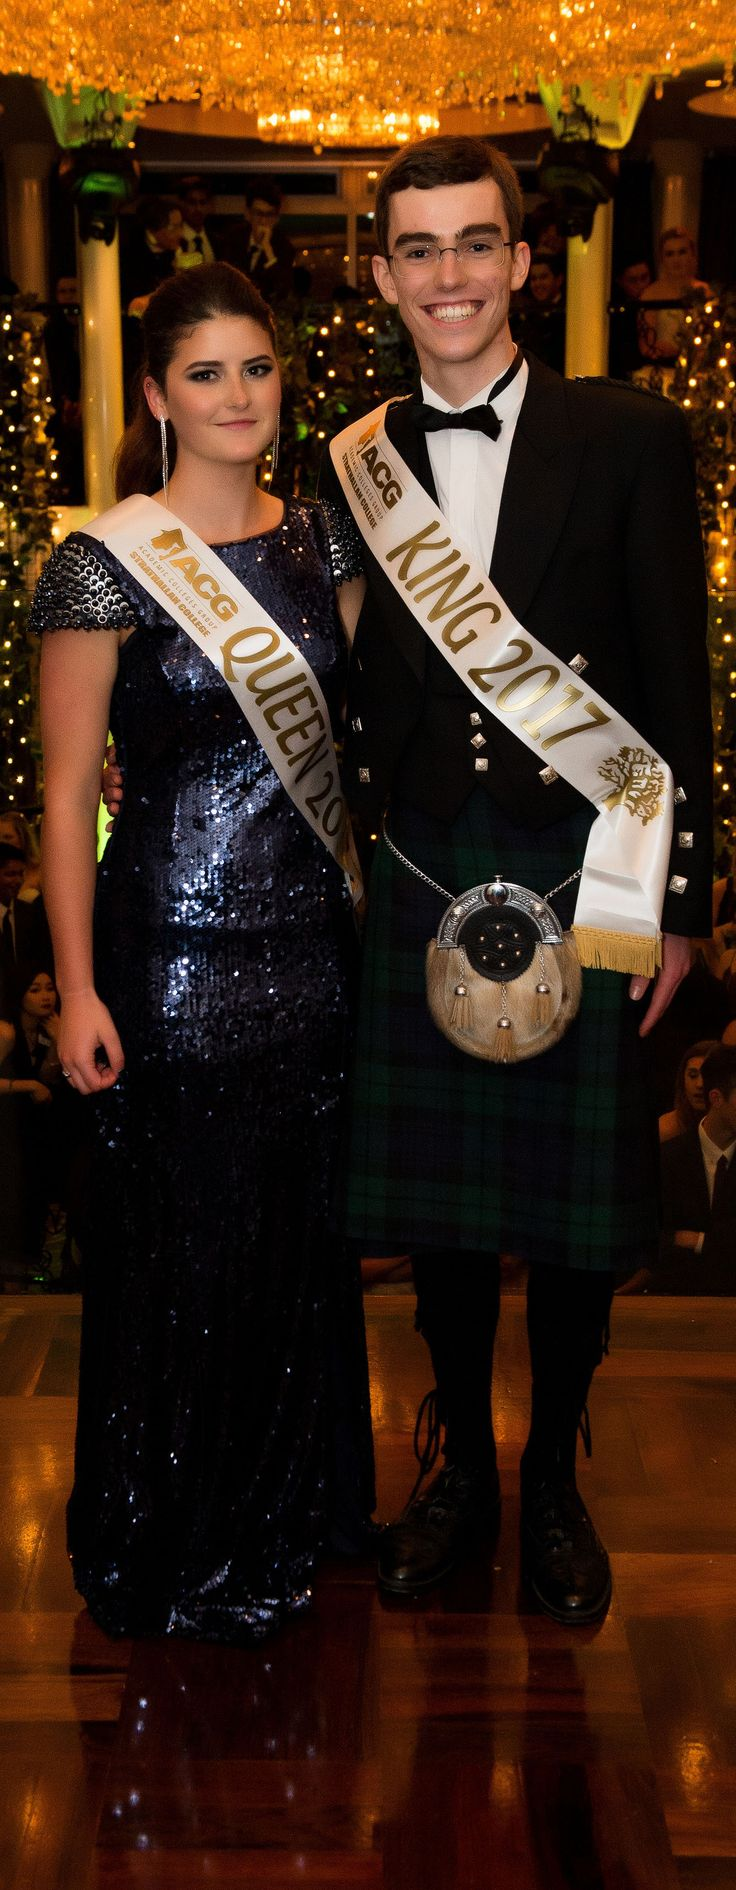 Strathallan College School Ball 2017. King and Queen!